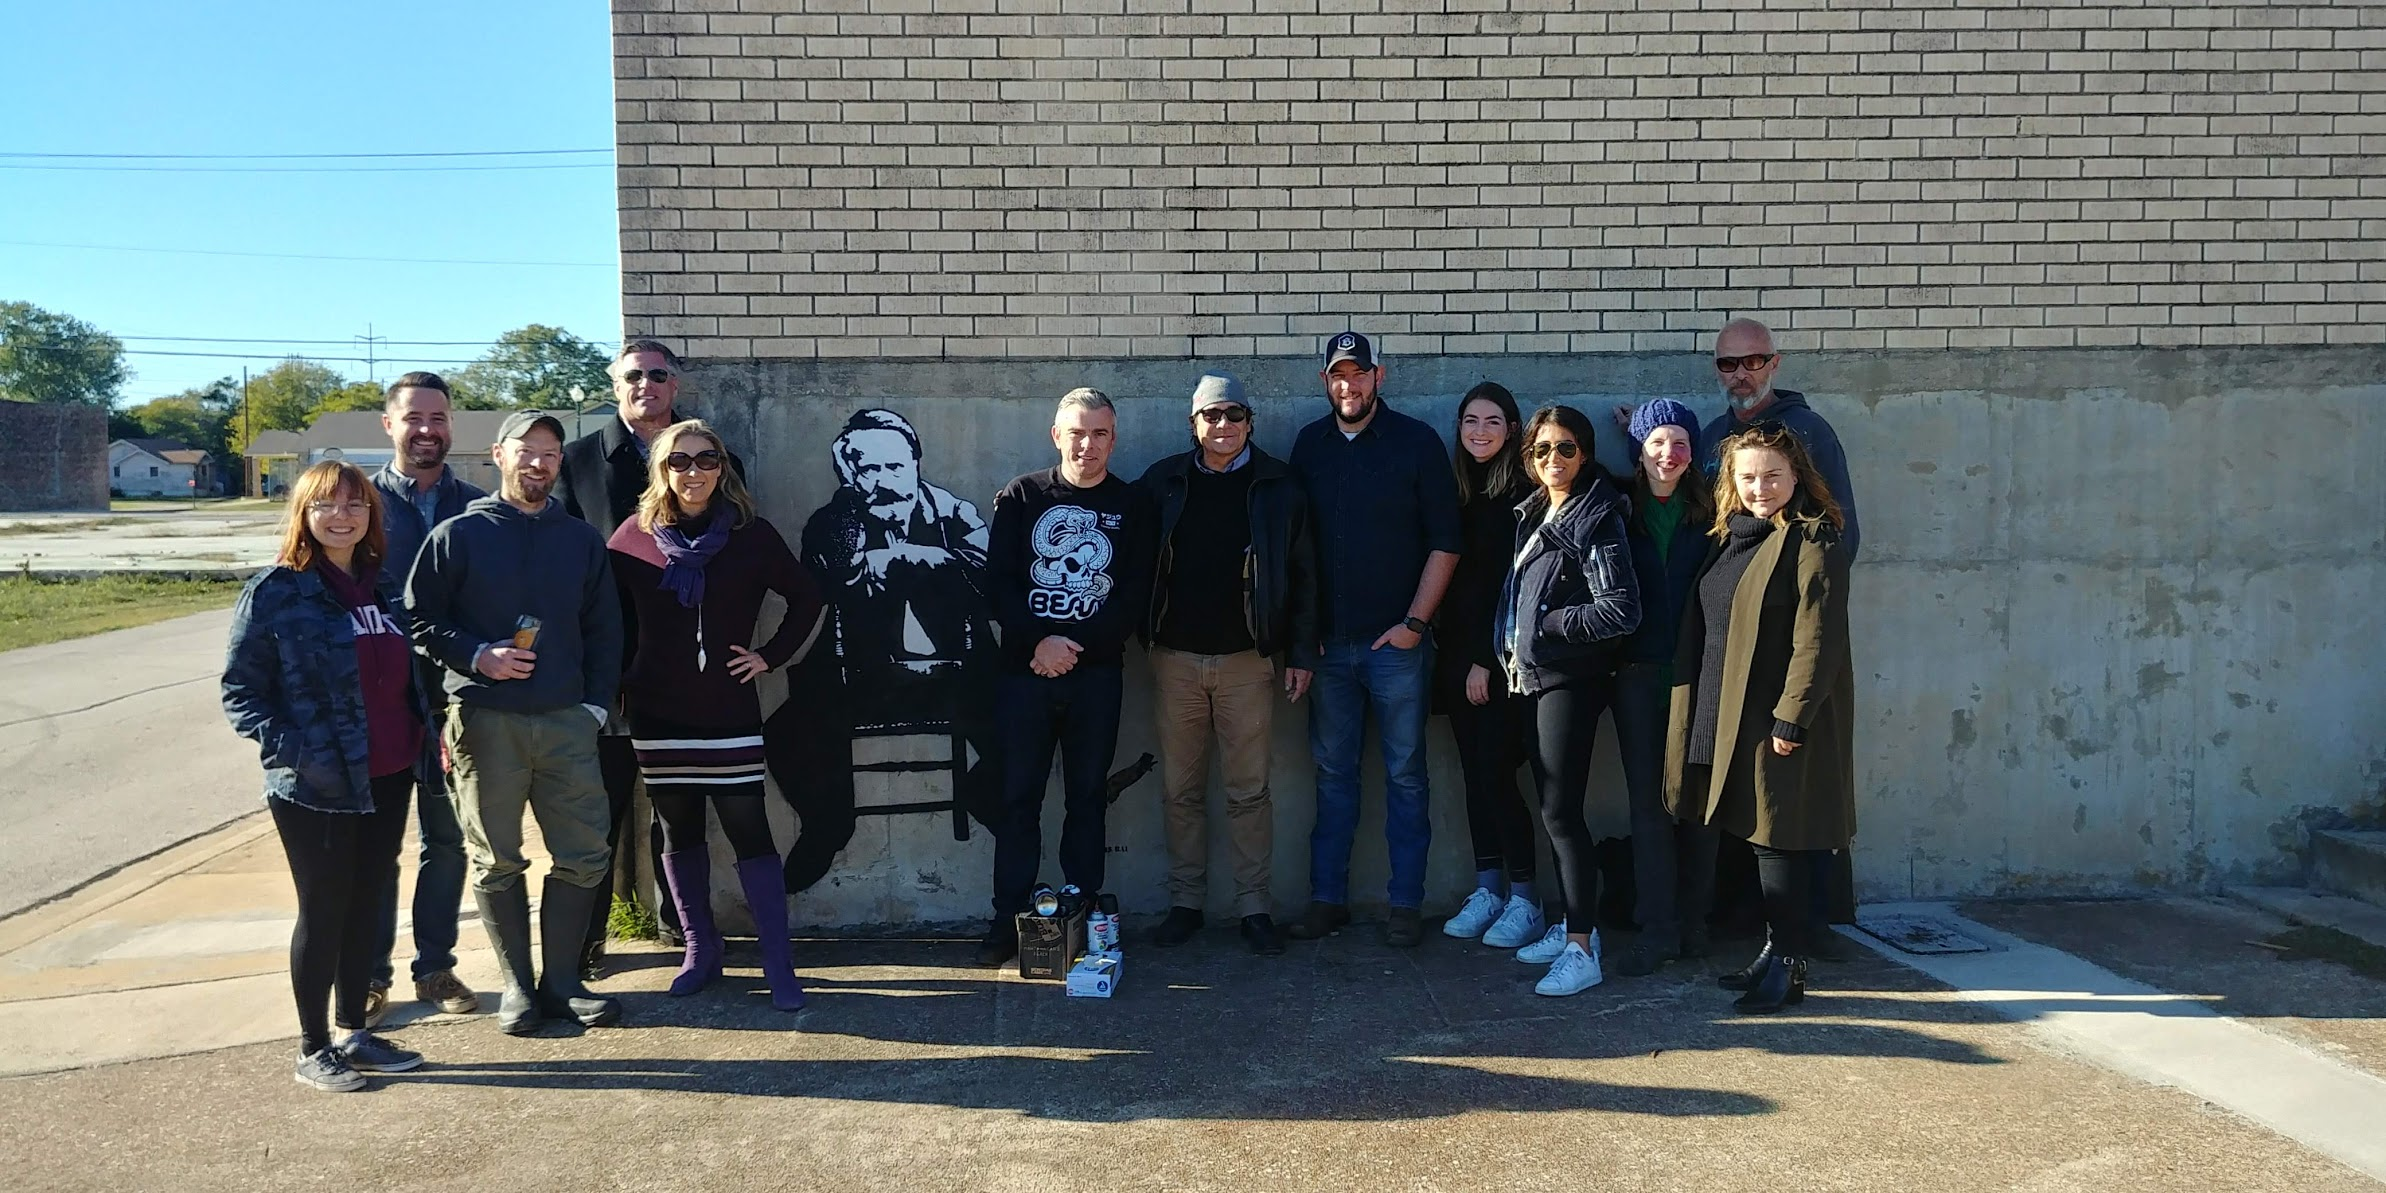 Blek le Rat and supporters stand next to one of his street art piece's in Waco, Texas